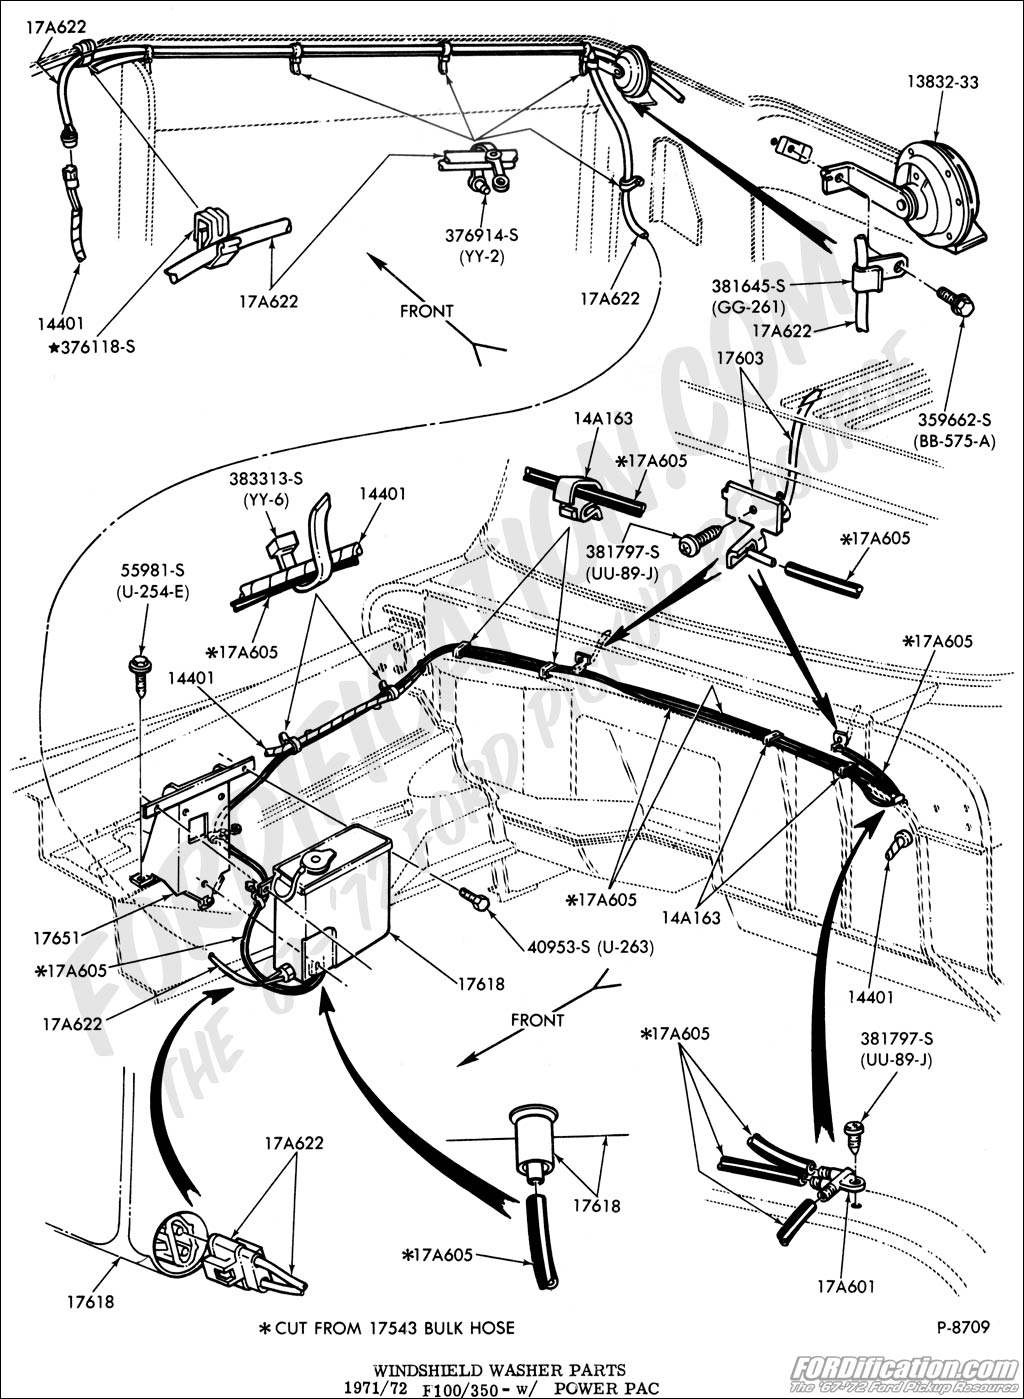 2010 ford truck fuse diagram wiring library Mack Motors On Pulaski 1024x1399 ford truck technical drawings and schematics